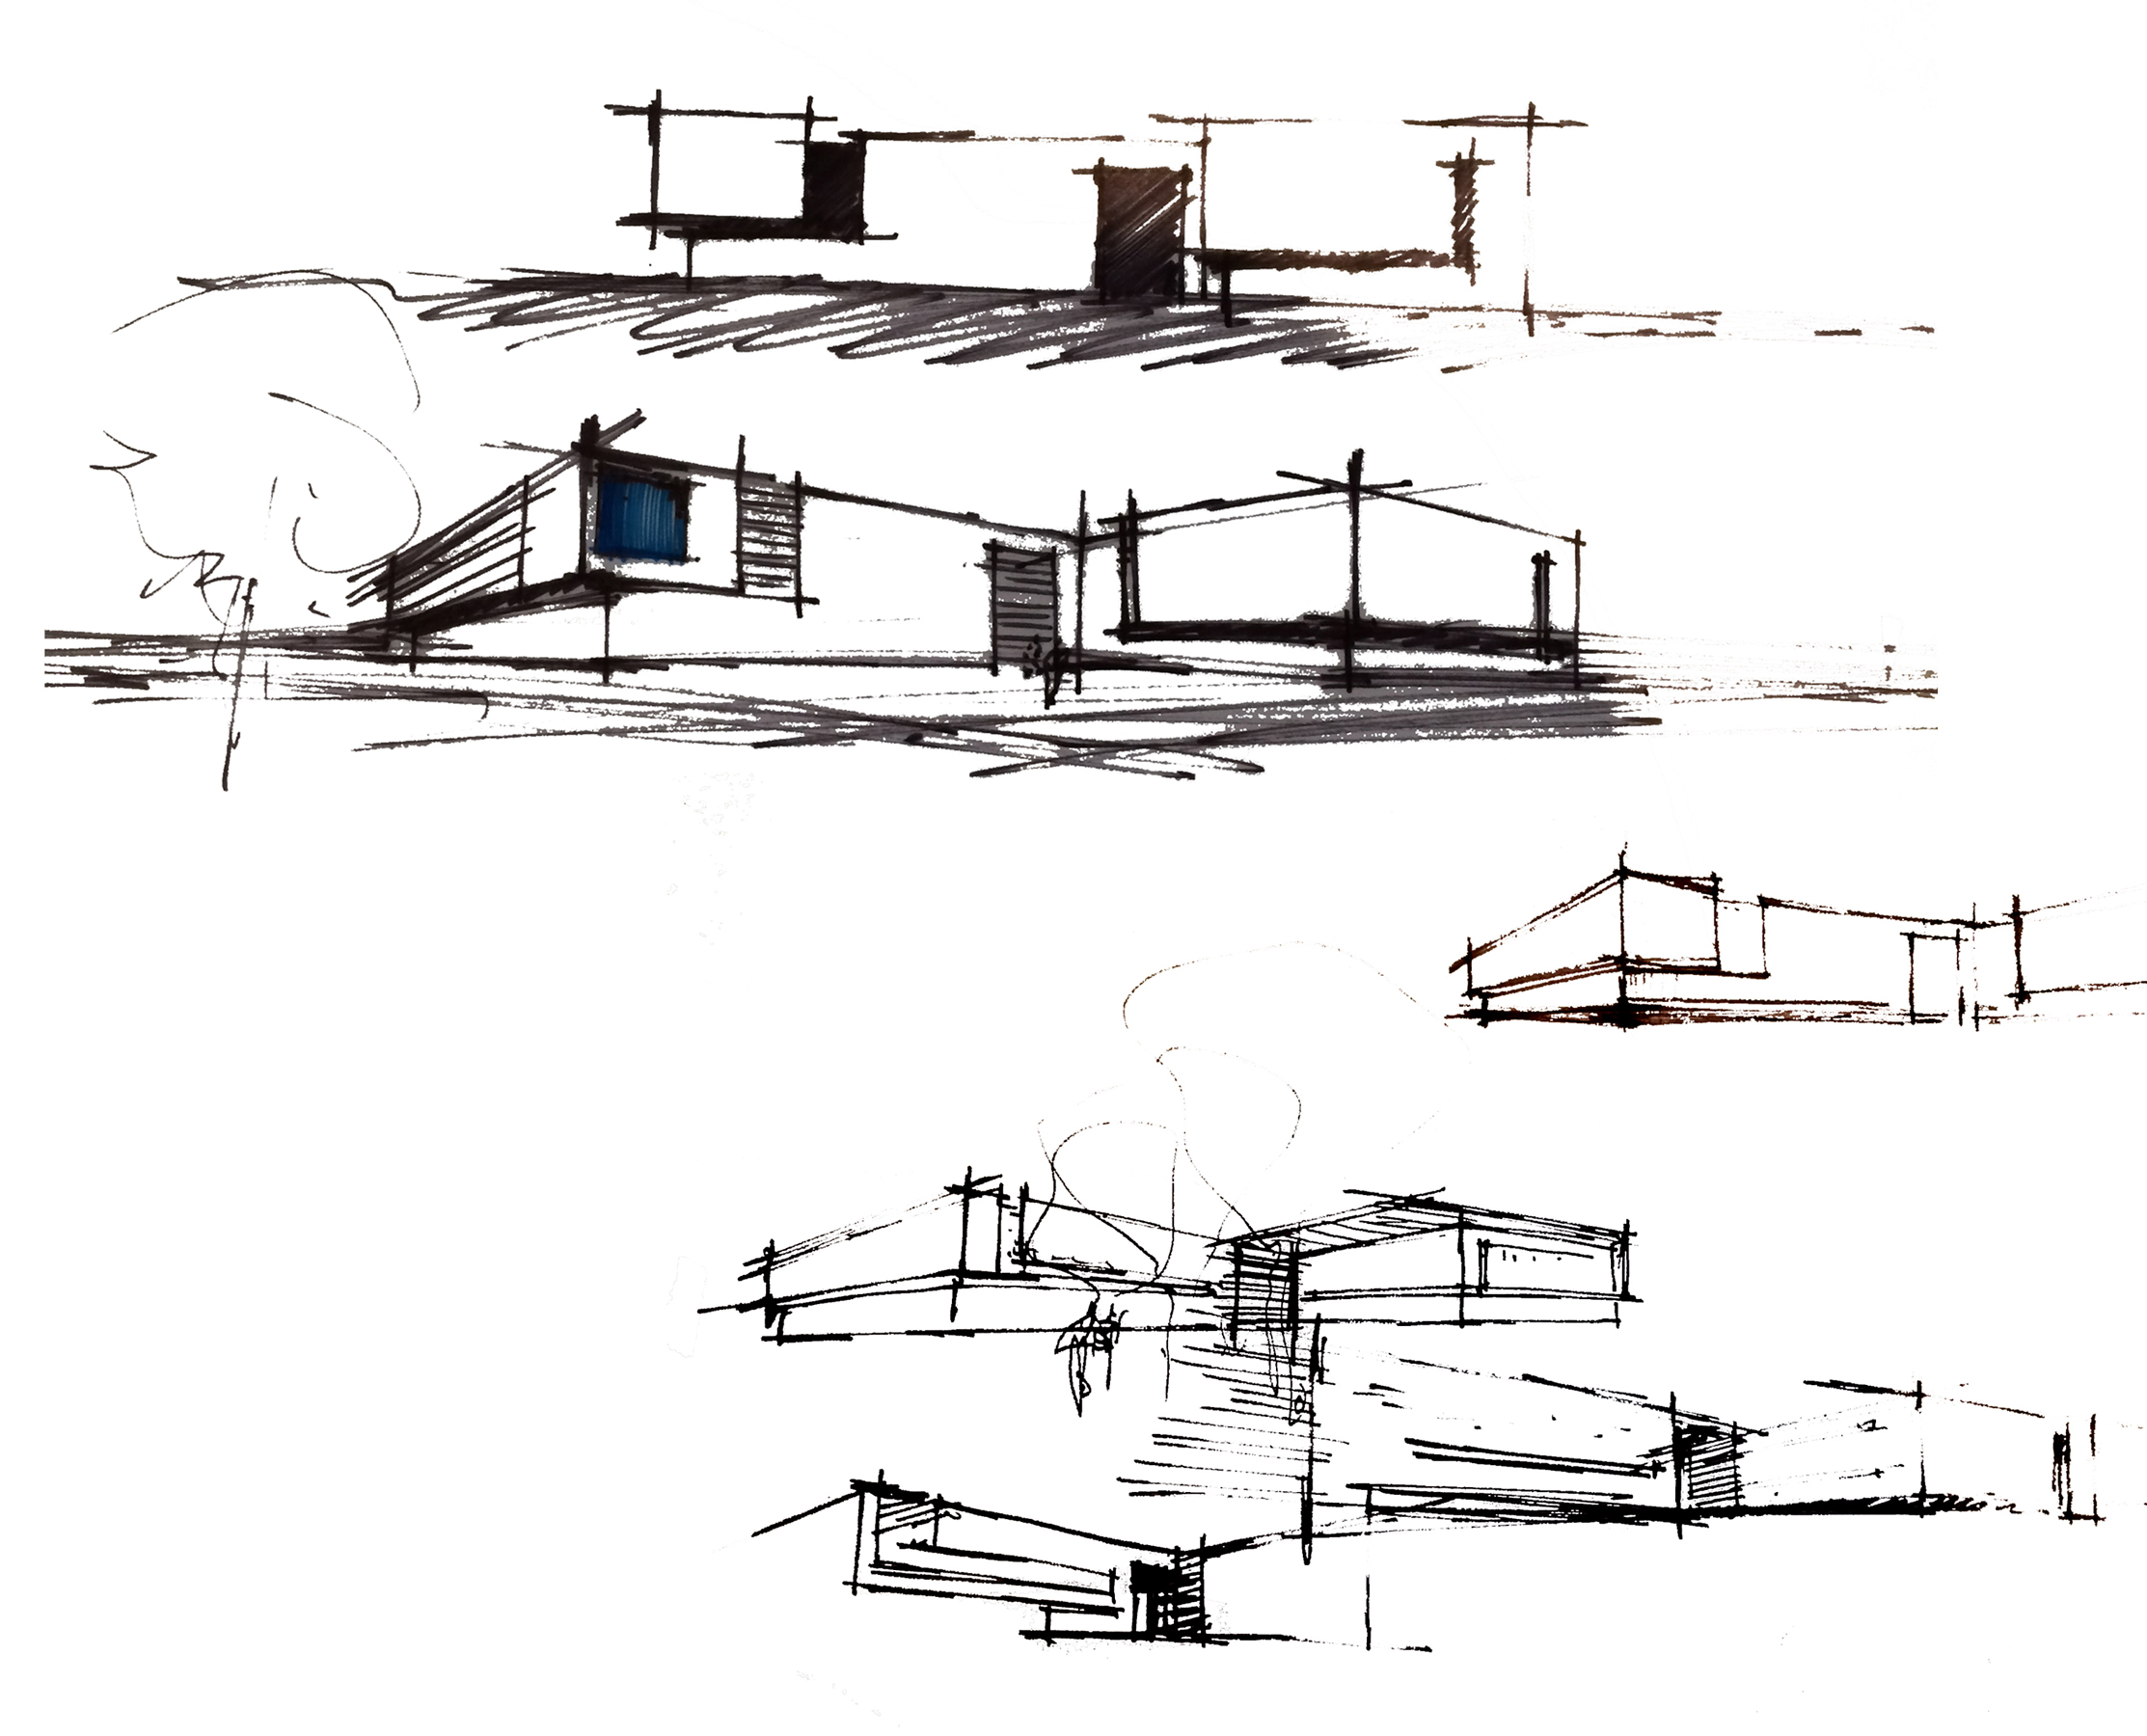 Brinkman Partners HQ The Fuse concept sketches open studio architecture OSA